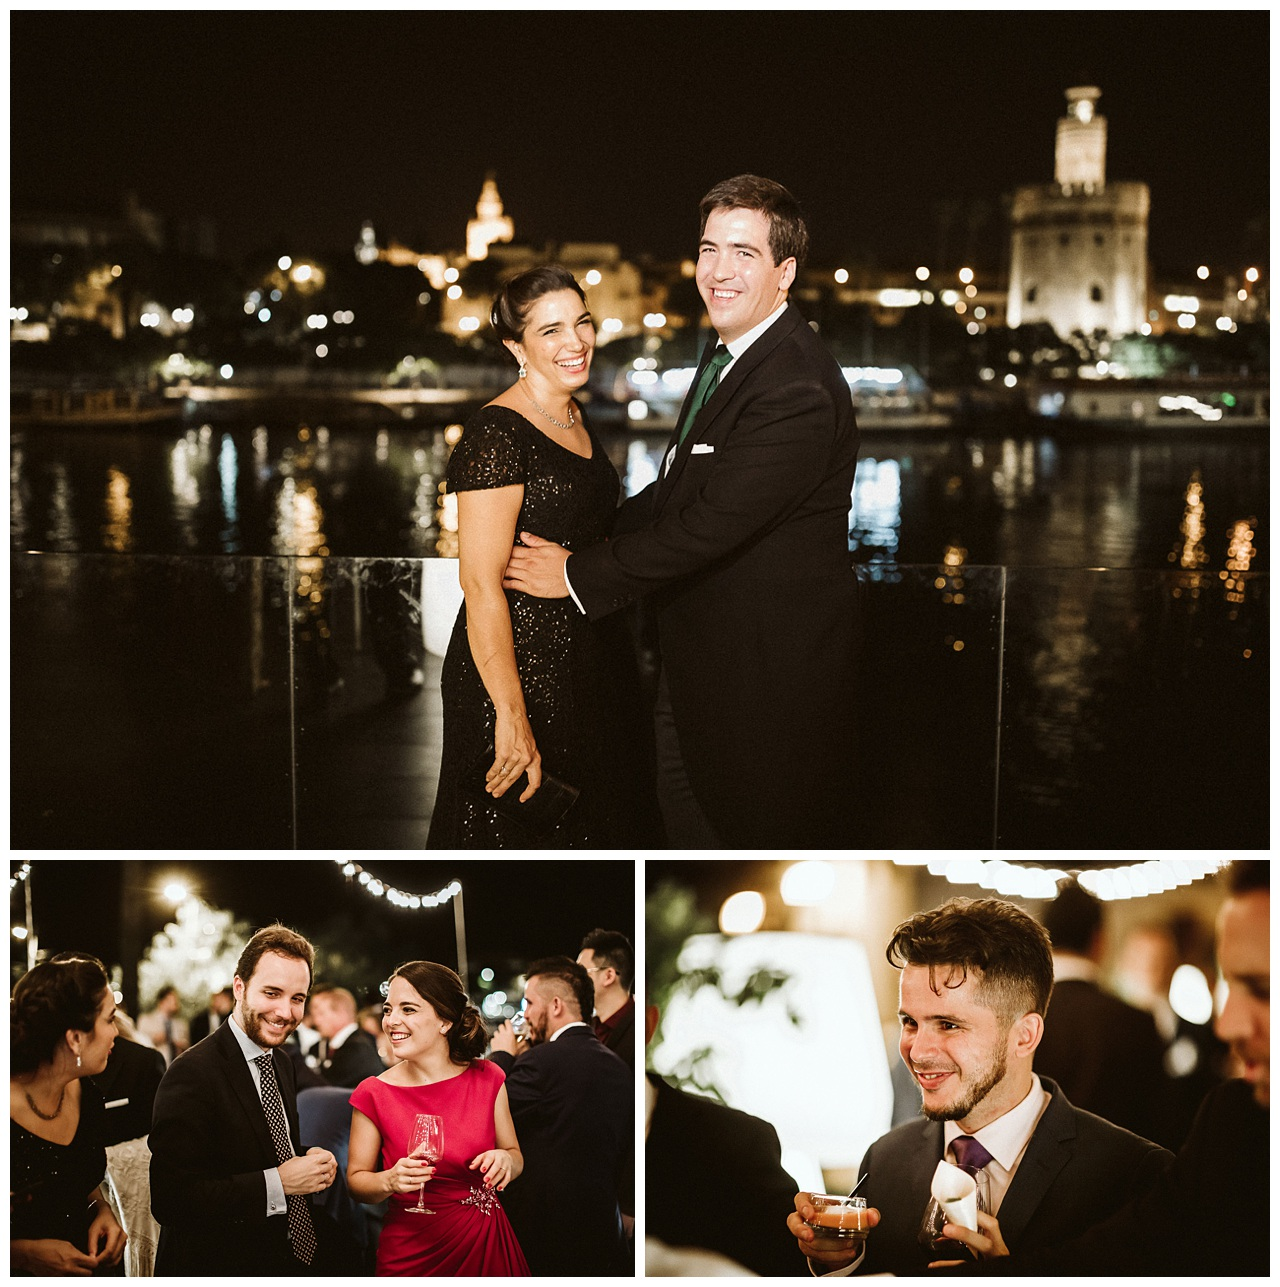 El cocktail de boda en Sevilla